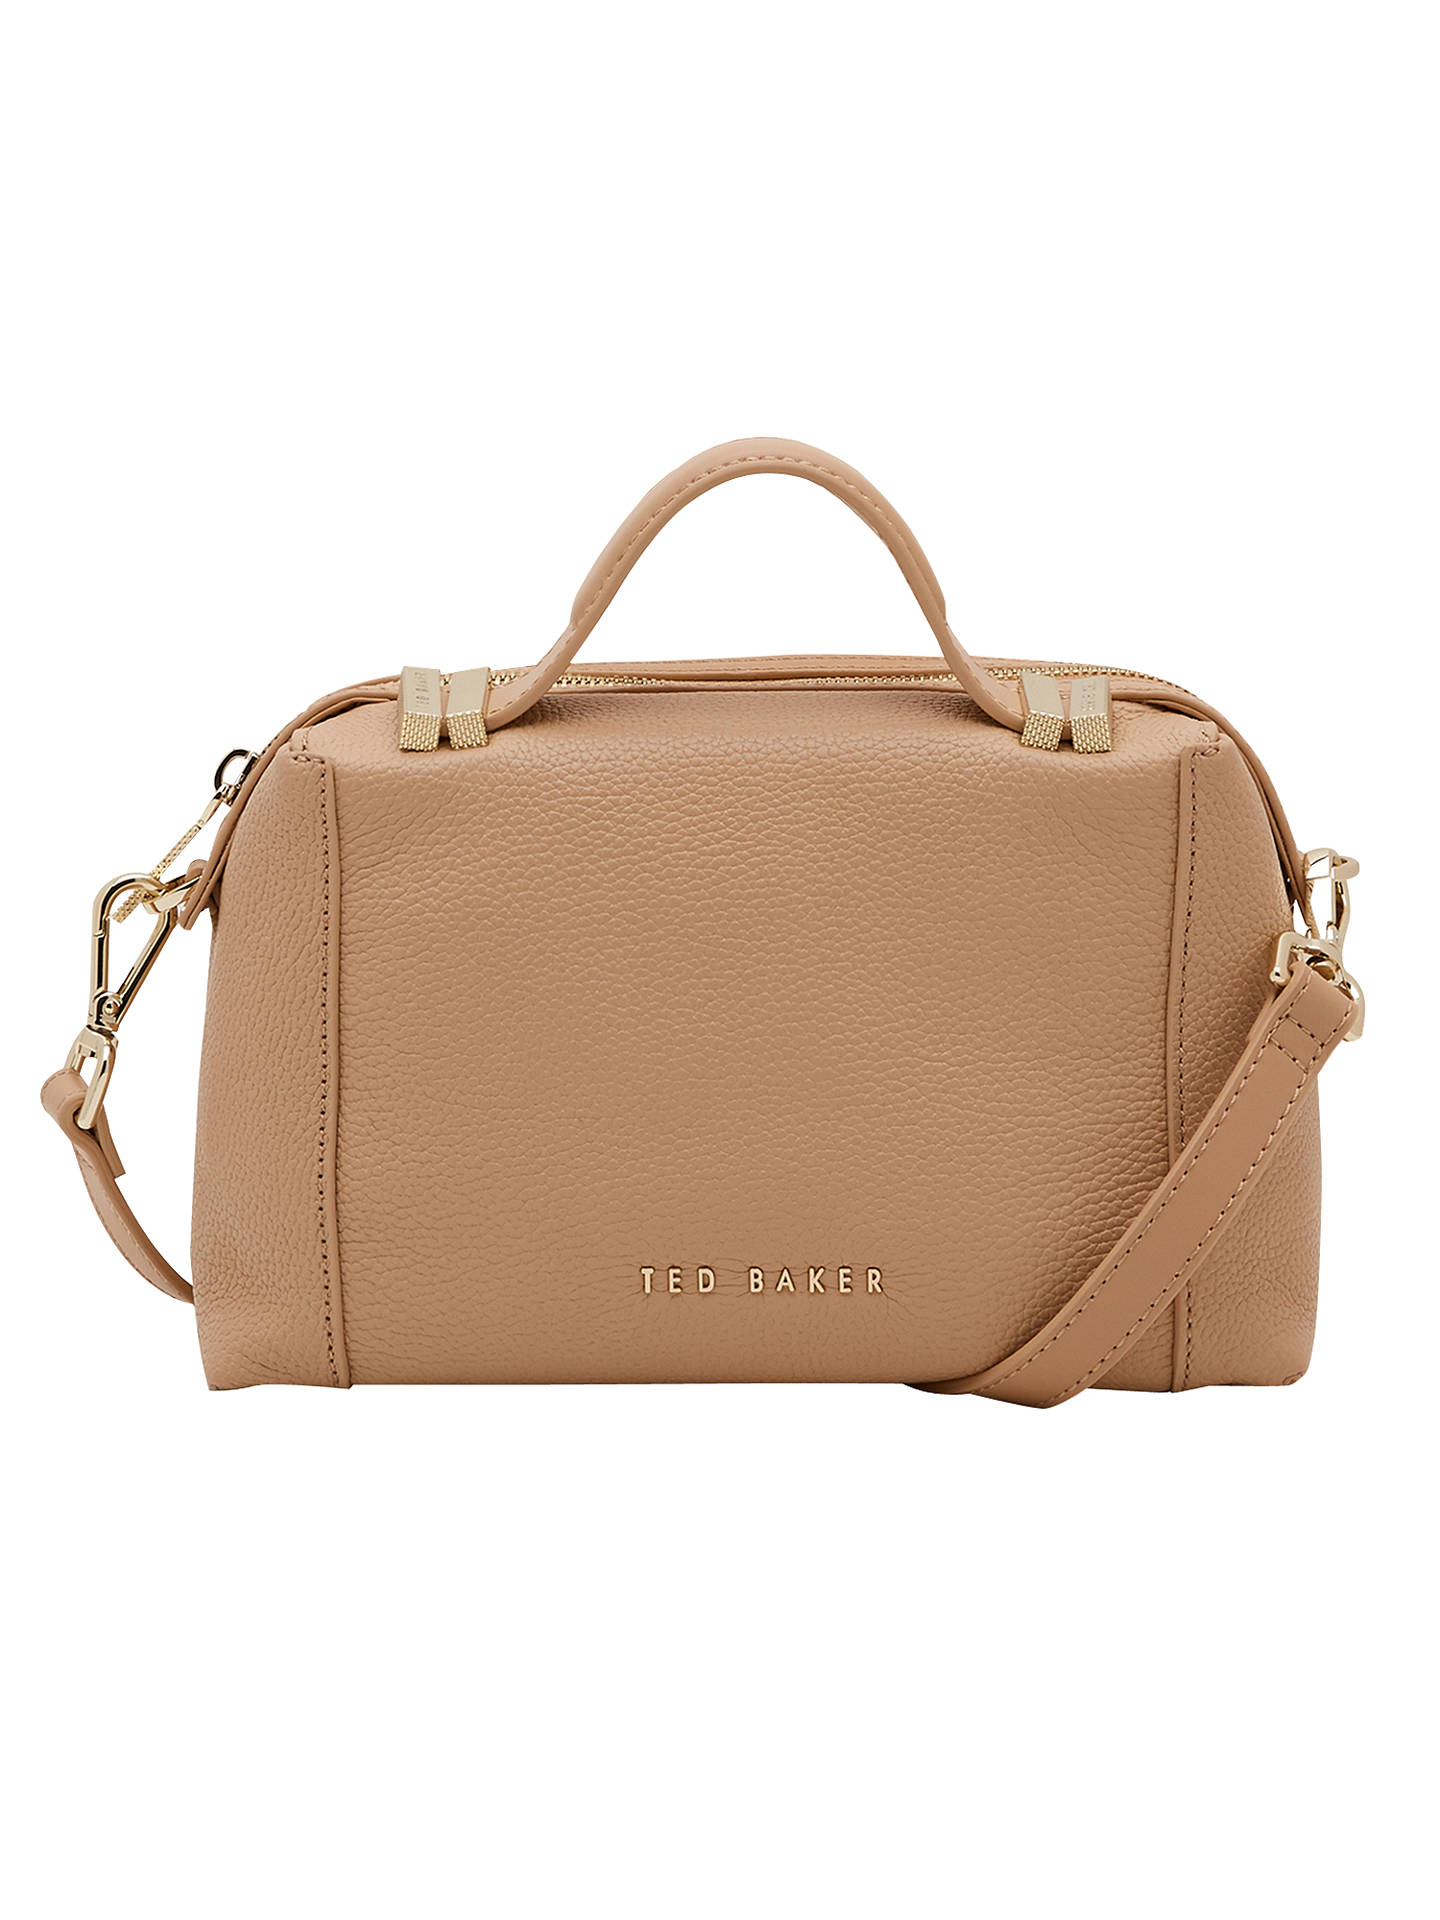 Ted Baker Albett Small Leather Tote Bag At John Lewis Partners